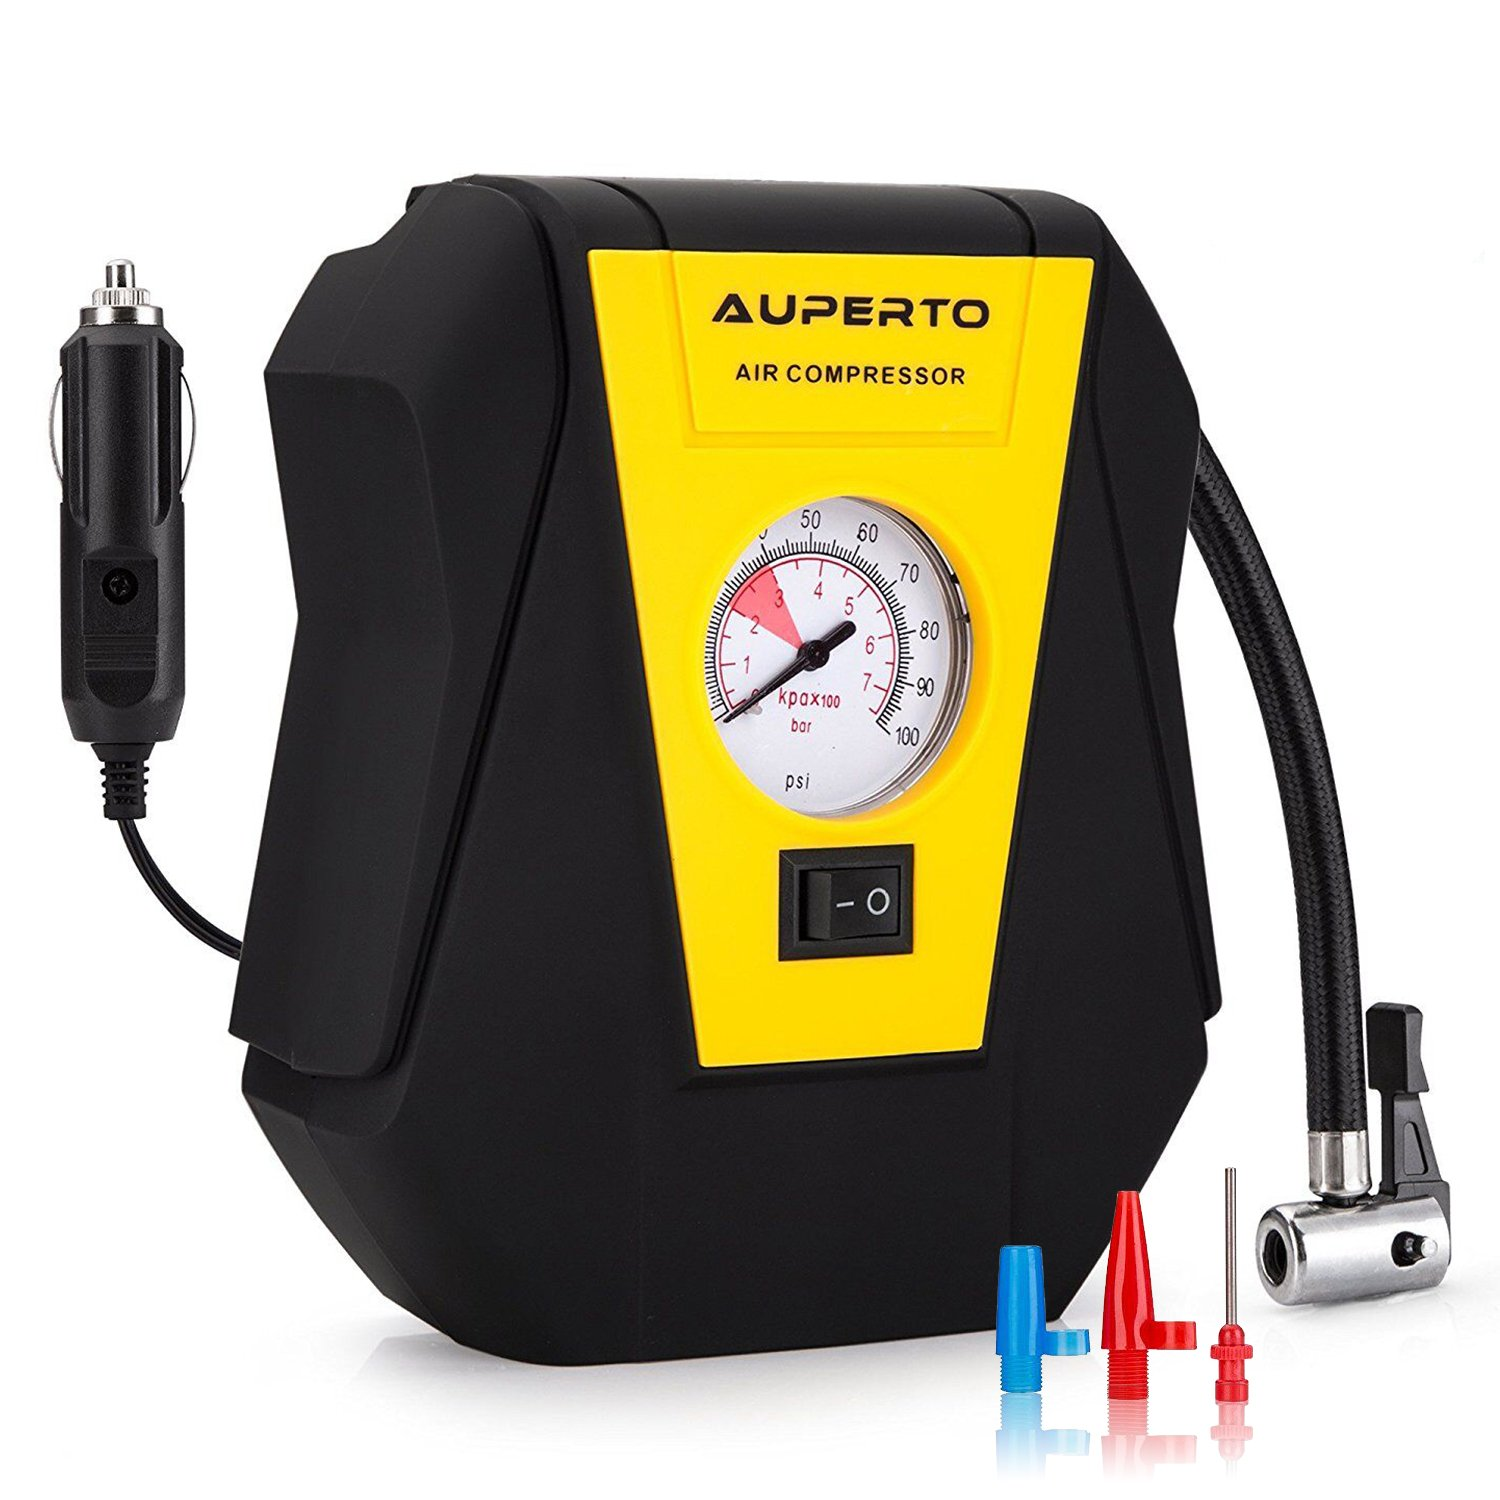 AUPERTO Portable Air Compressor,12V Tire Inflator with Gauge 100PSI for Cars, Bikes, Motorcycles and Inflatables